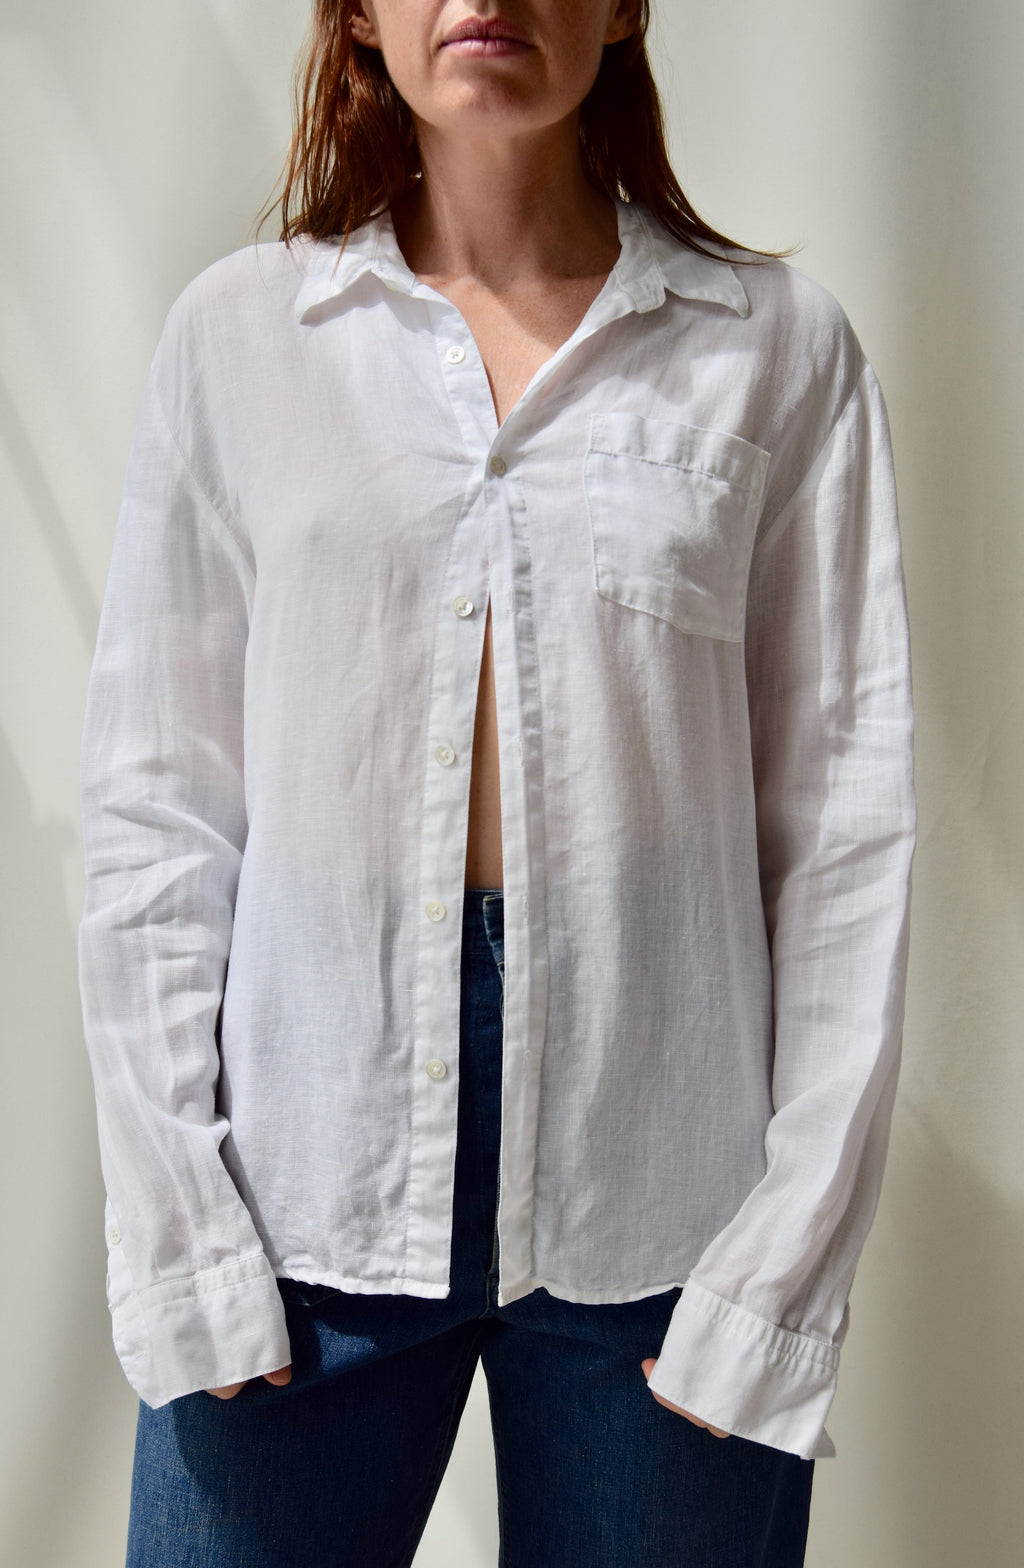 James Perse Men's Linen Shirt